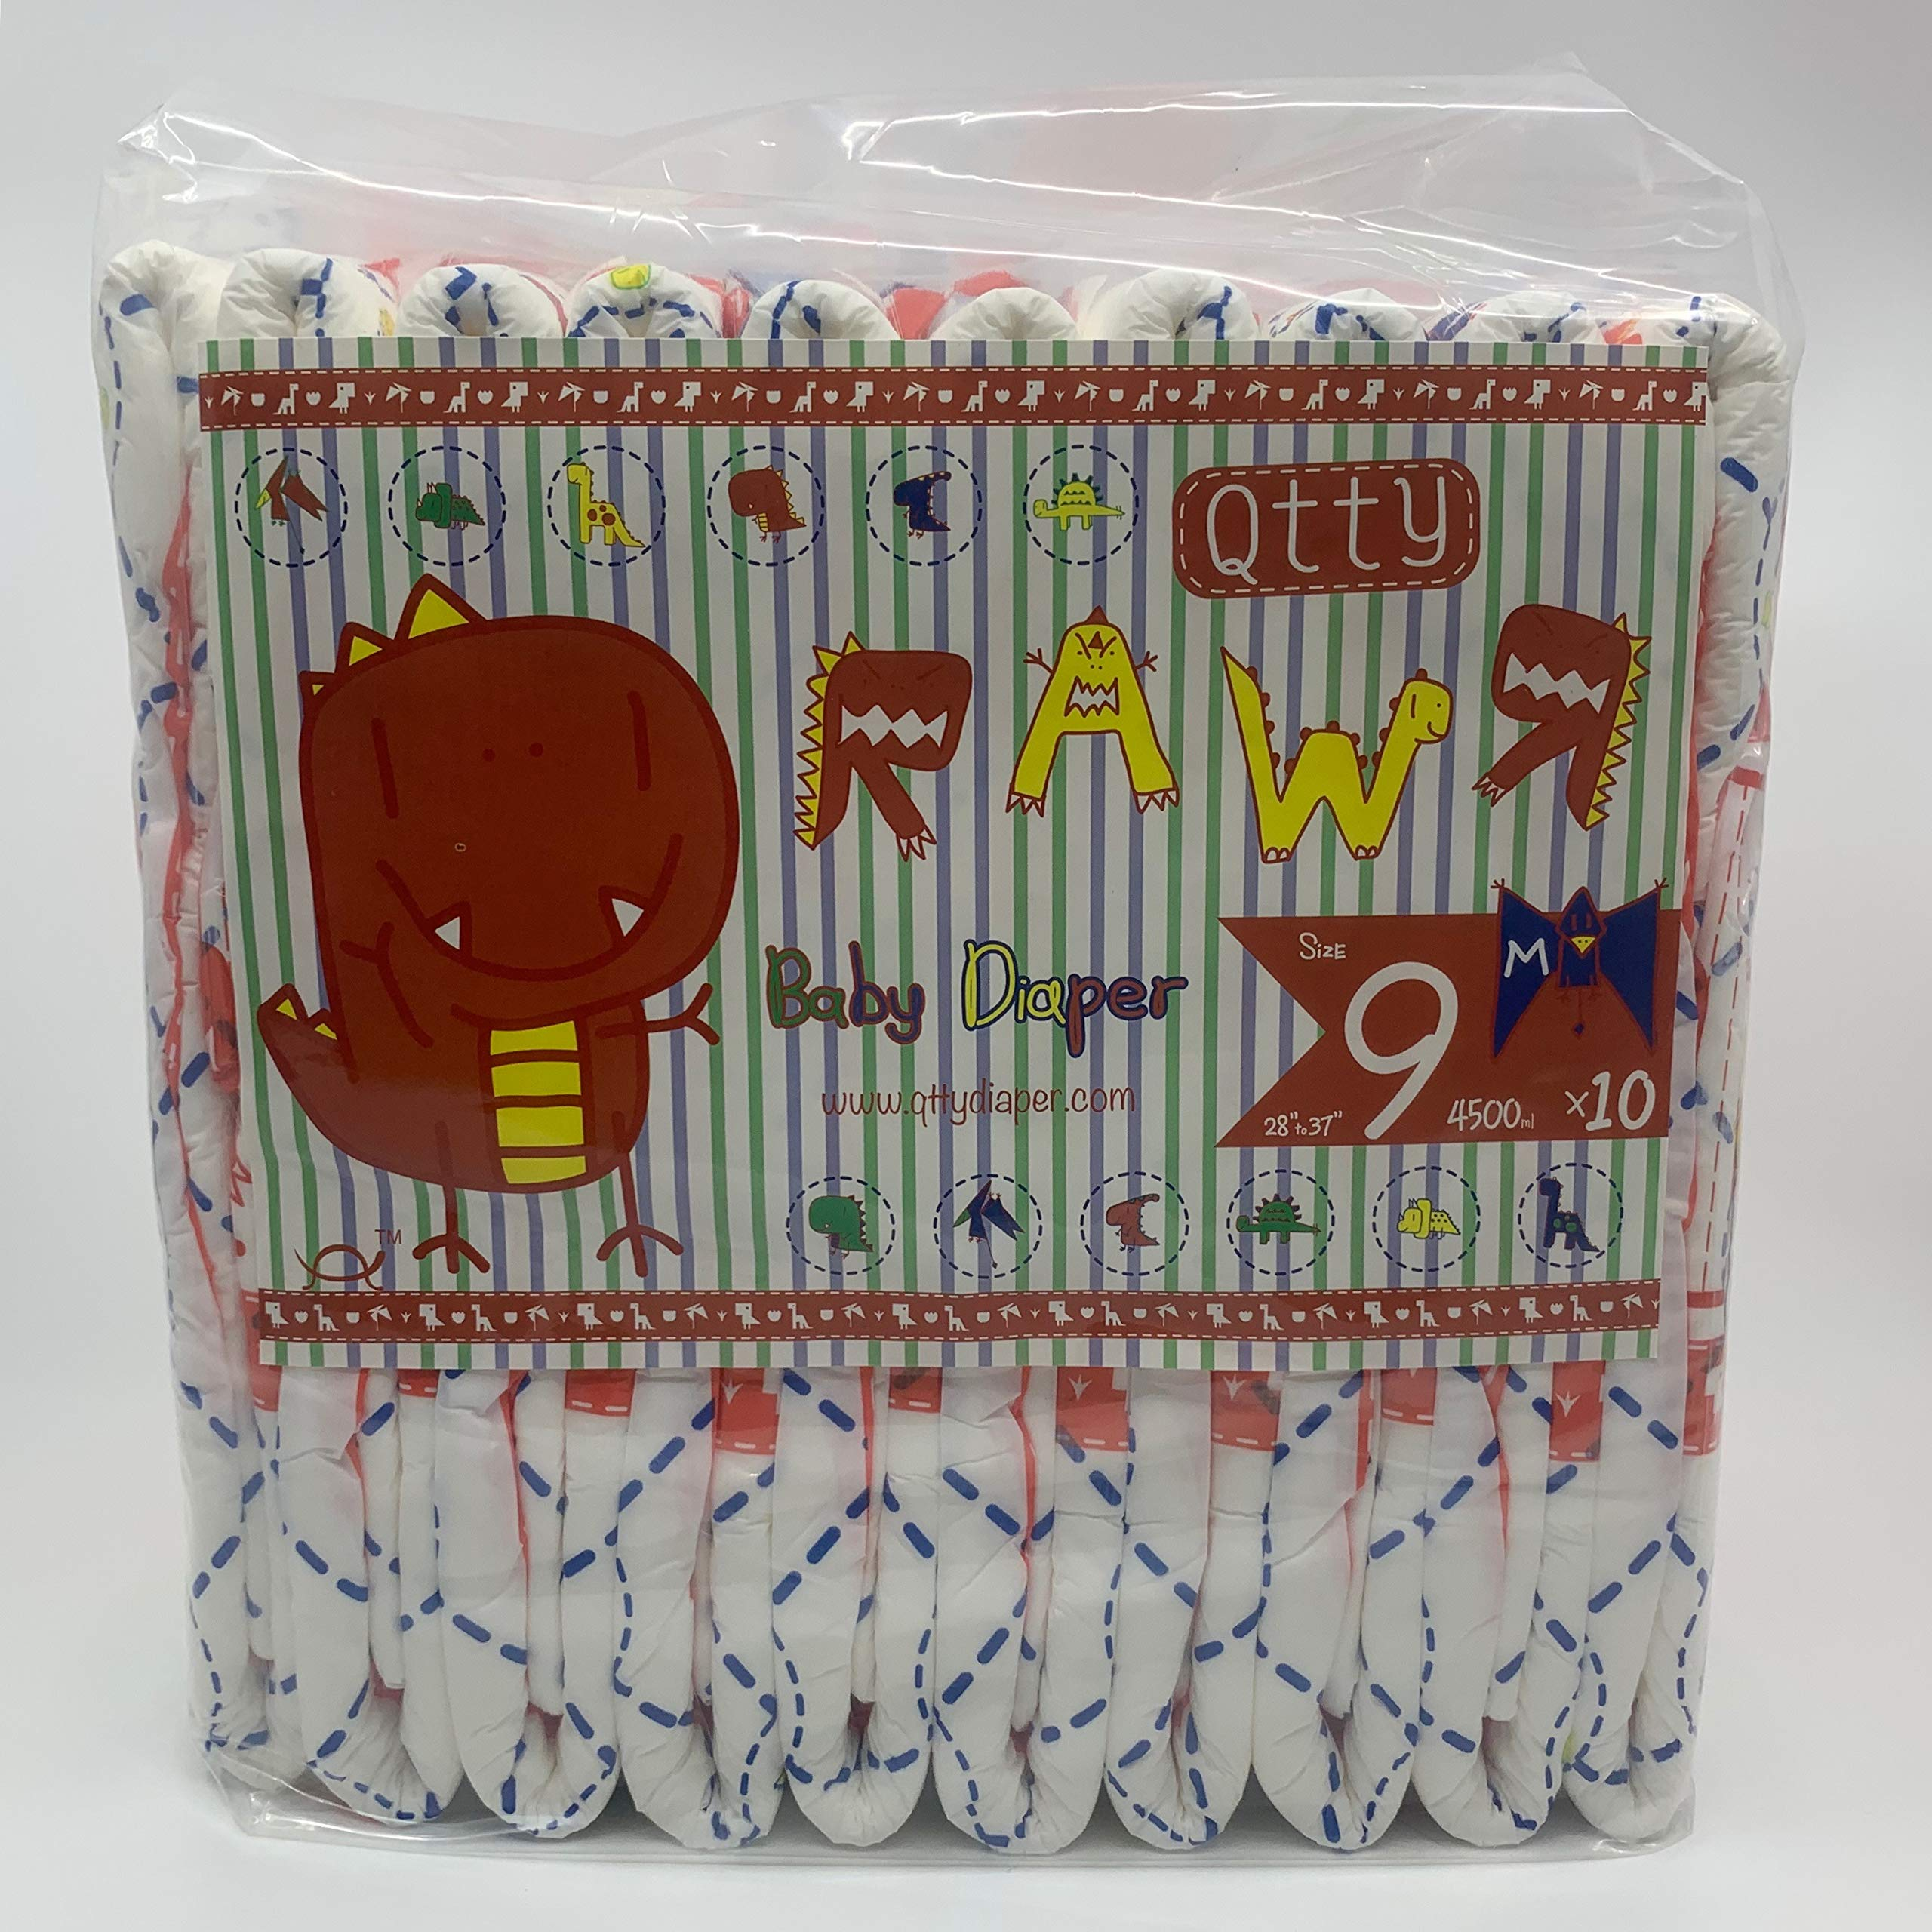 RAWR Diapers for ADULTS, Dinosaur print(Medium) by Qtty Diapers